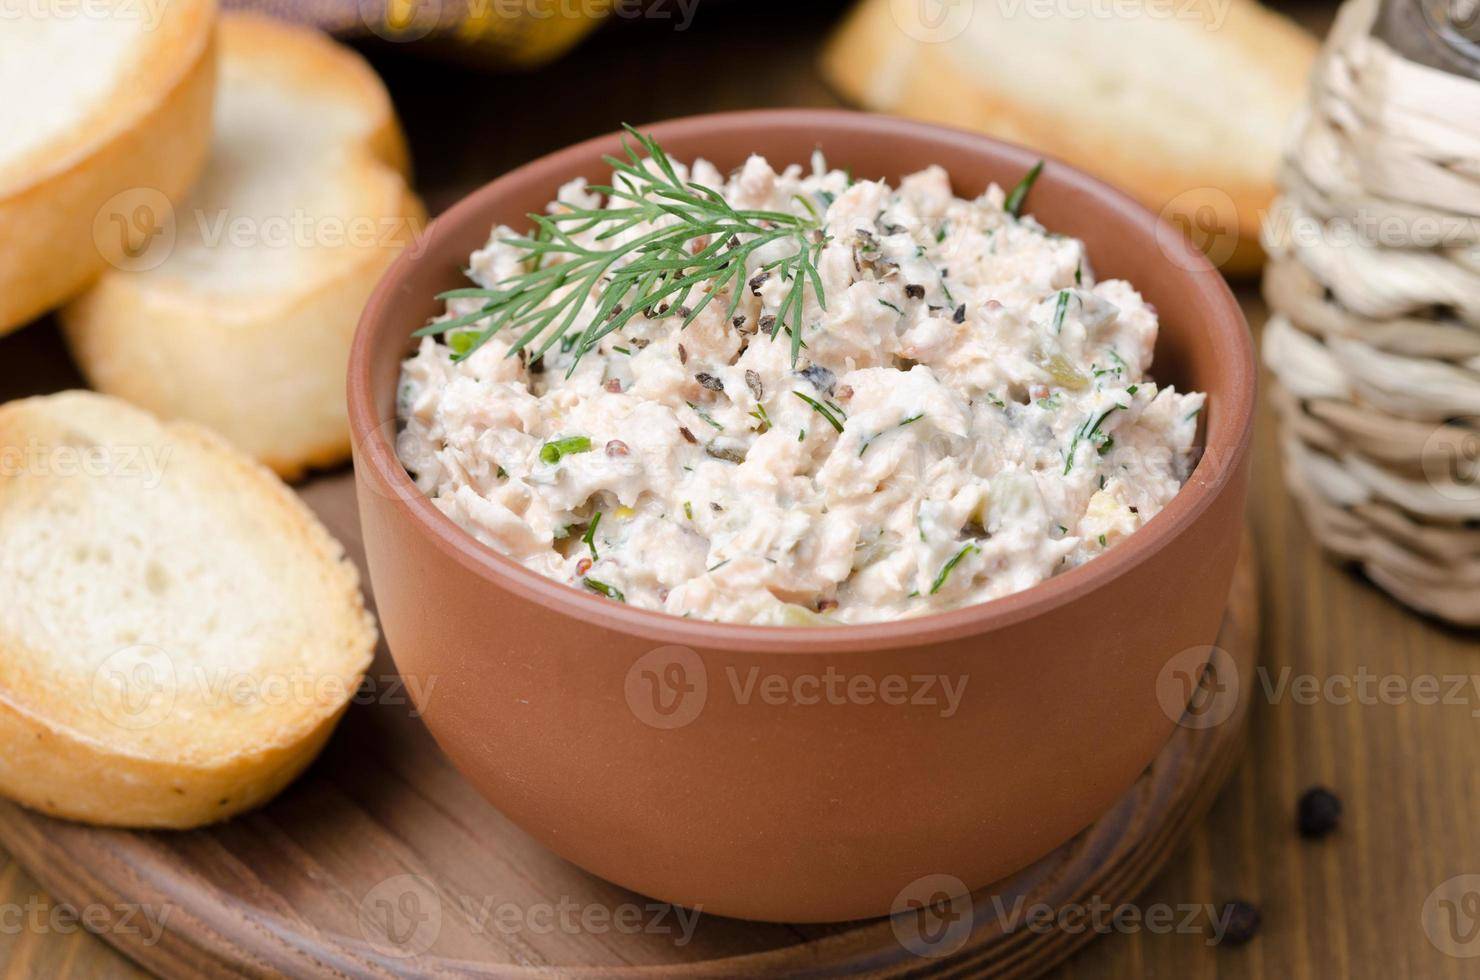 pate of smoked fish with sour cream and herbs, close-up photo